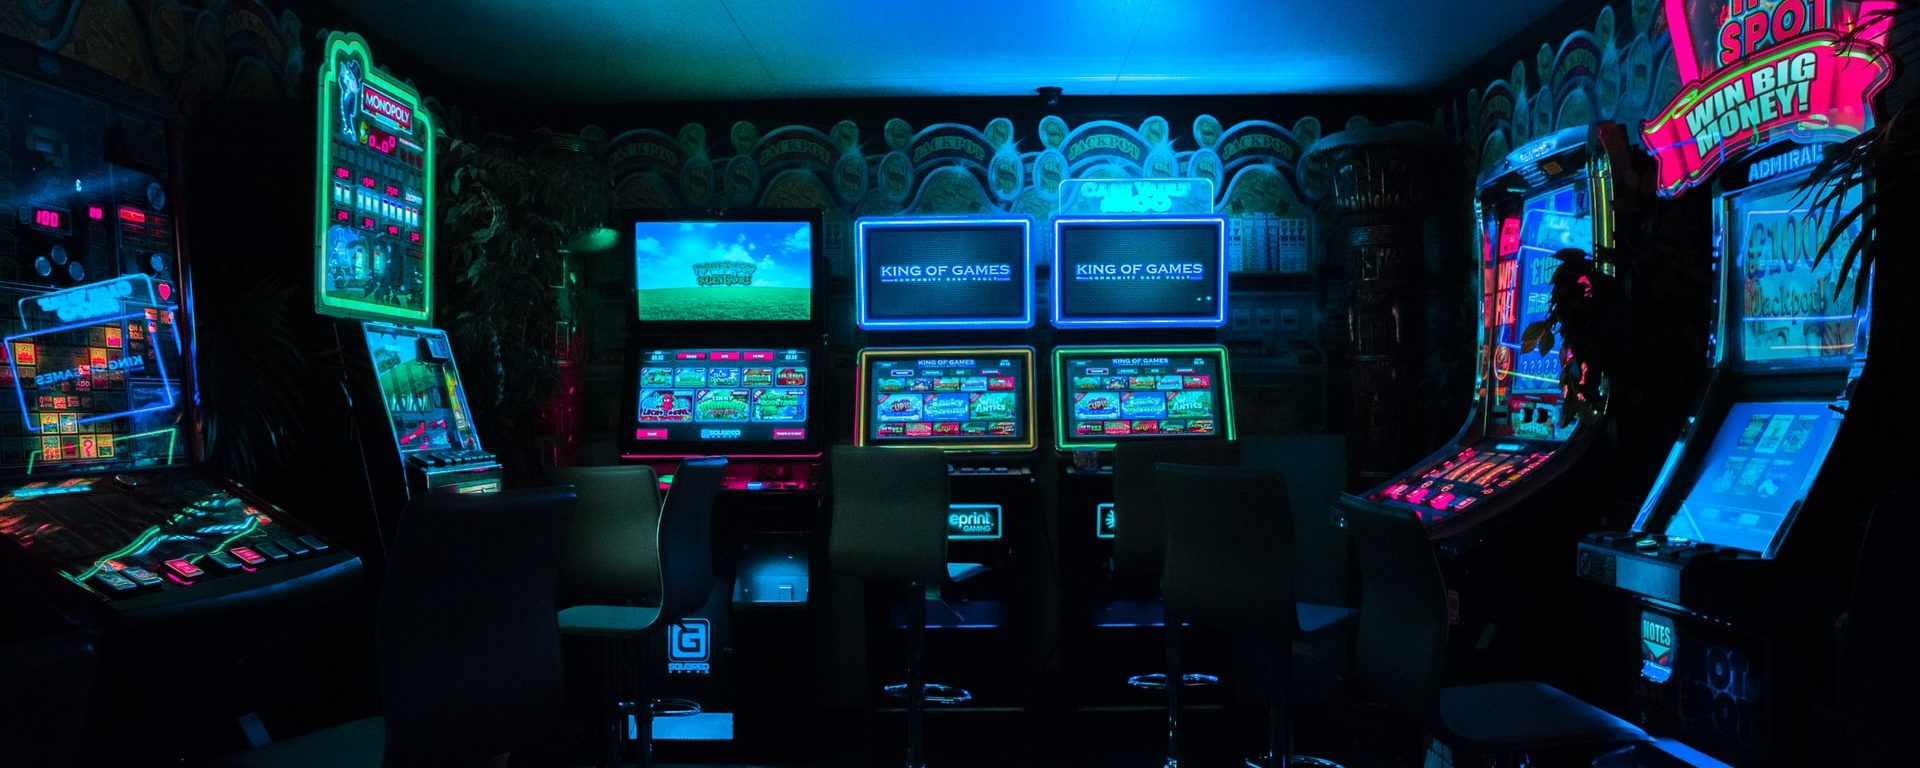 Blockchain and cryptocurrency gaming